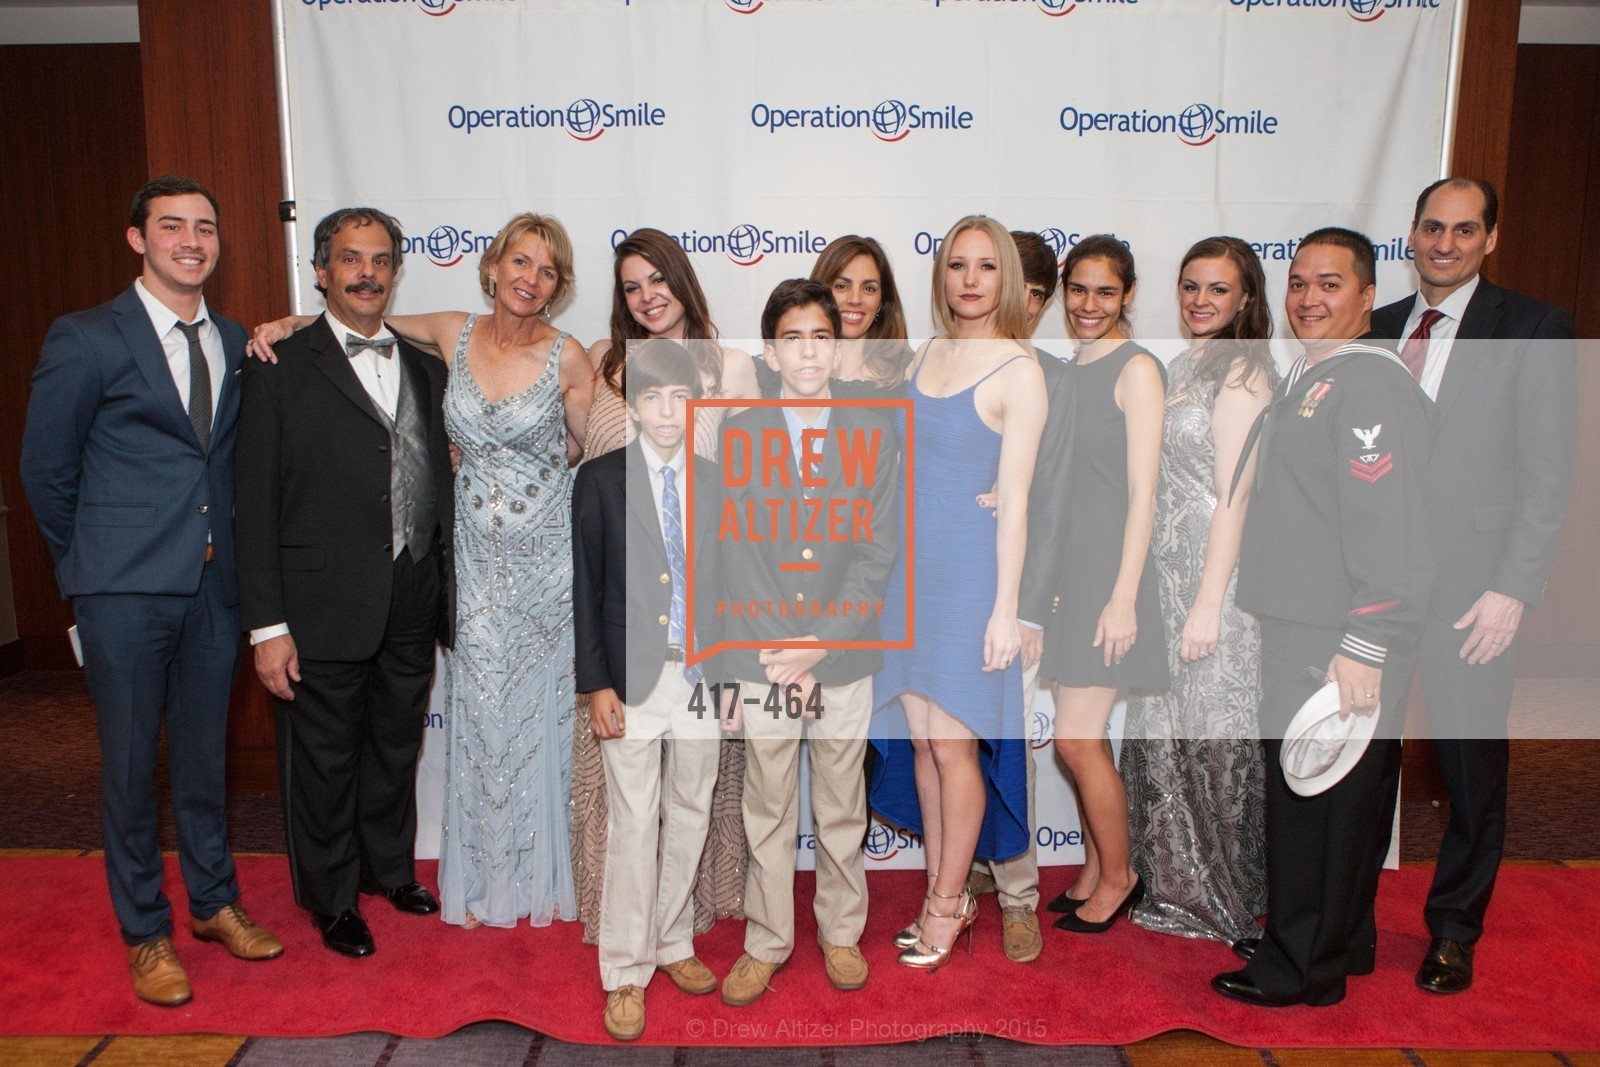 Edward Del Beccaro, Denise Del Beccaro, Griffin Lori, Erith Del Beccaro, Luke Lori, Lisa Lori, Zachary Lori, Lilly Del Beccaro, Christopher Vaughan, Mat Lori, Operation Smile Presents THE SAN FRANCISCO 2015 SMILE GALA, InterContinental Hotel, November 7th, 2015,Drew Altizer, Drew Altizer Photography, full-service agency, private events, San Francisco photographer, photographer california